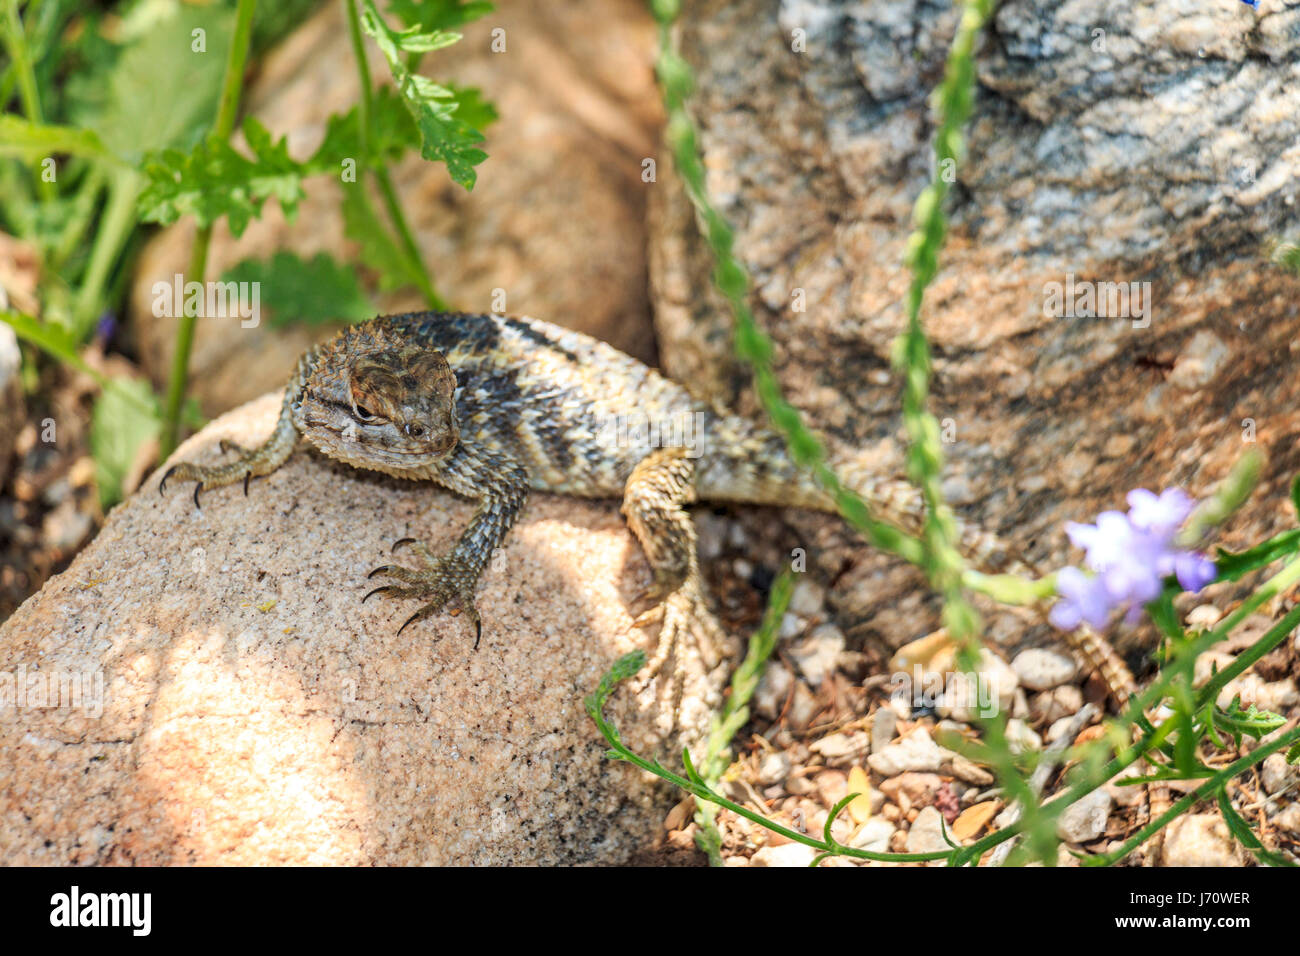 The desert spiny lizard ranges across the deserts of southwestern Arizona and the northeastern plateaus at elevations - Stock Image